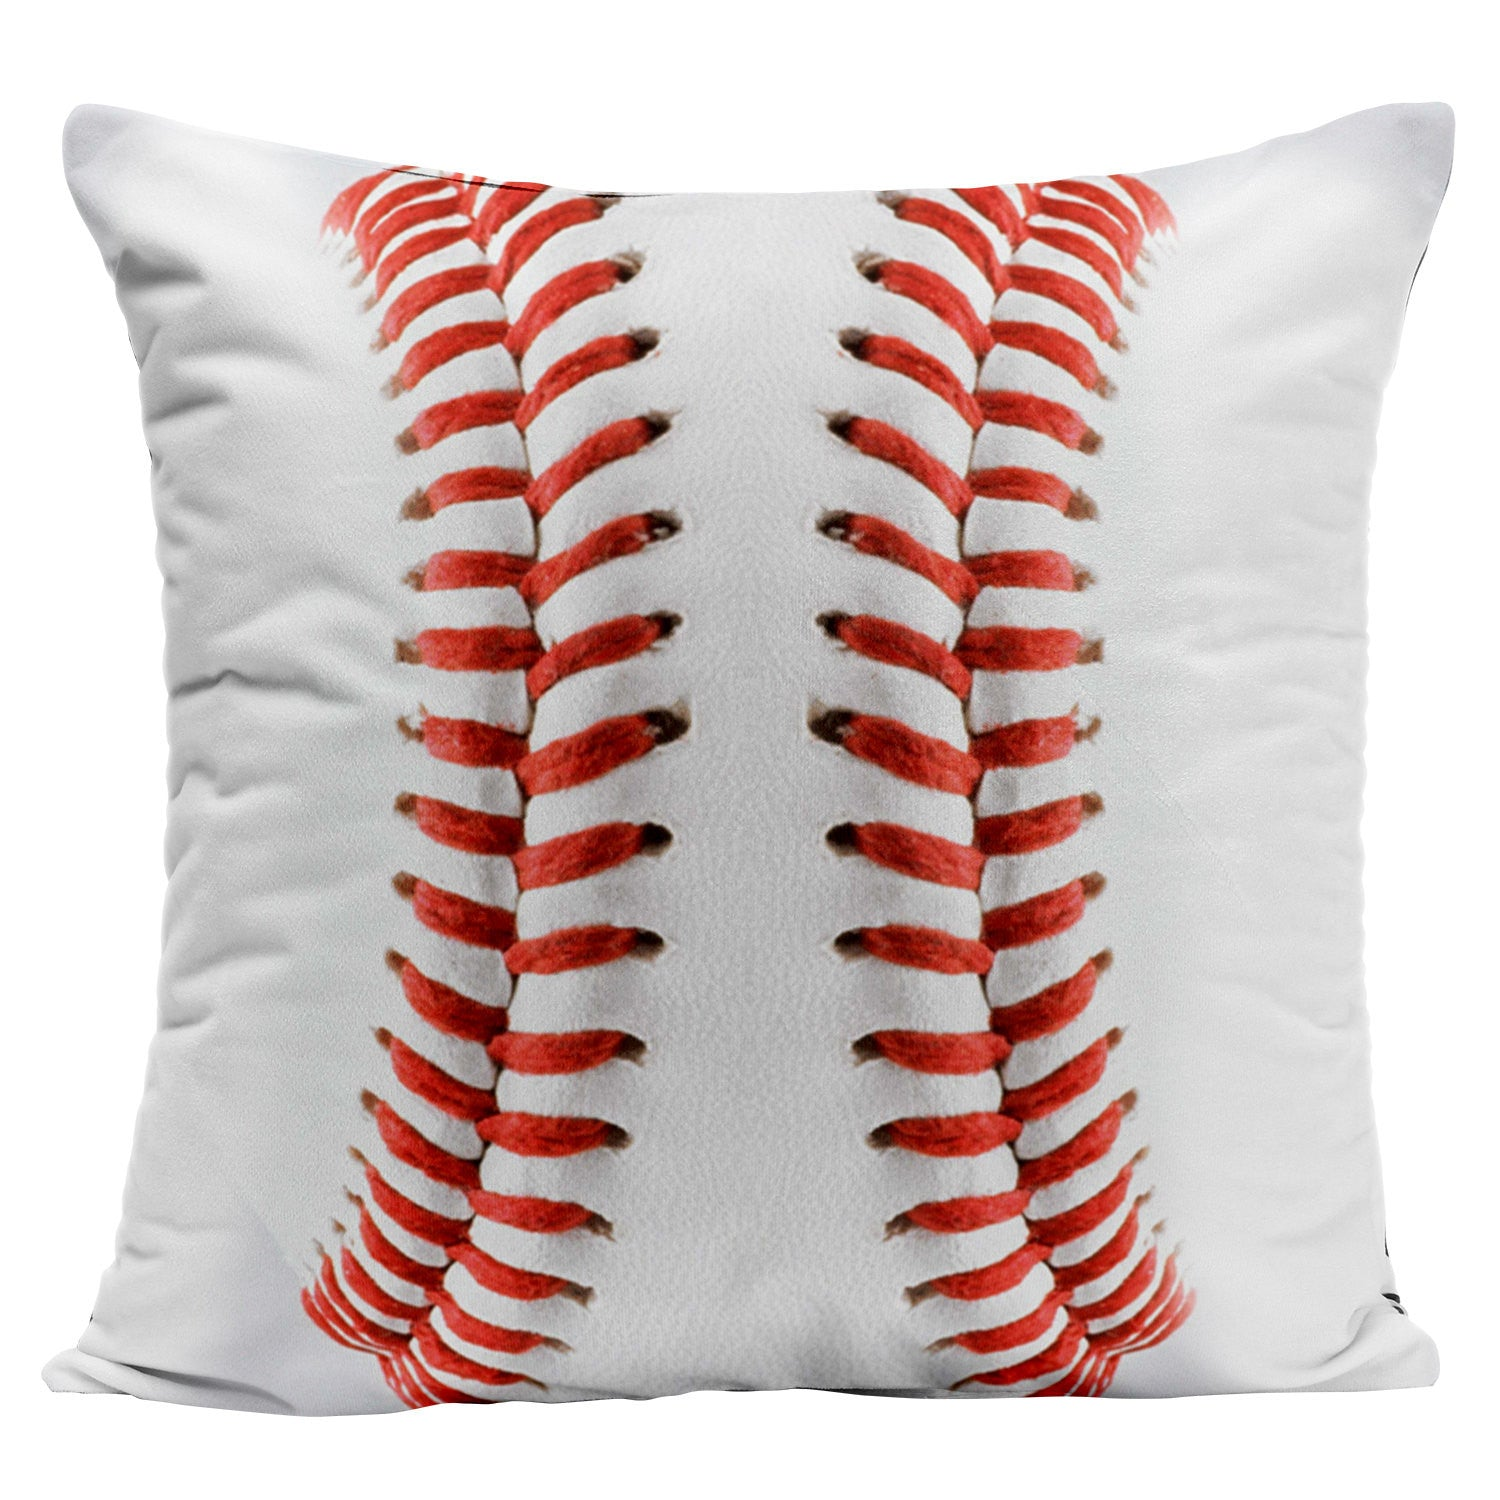 Baseball Pillow - Shweeet